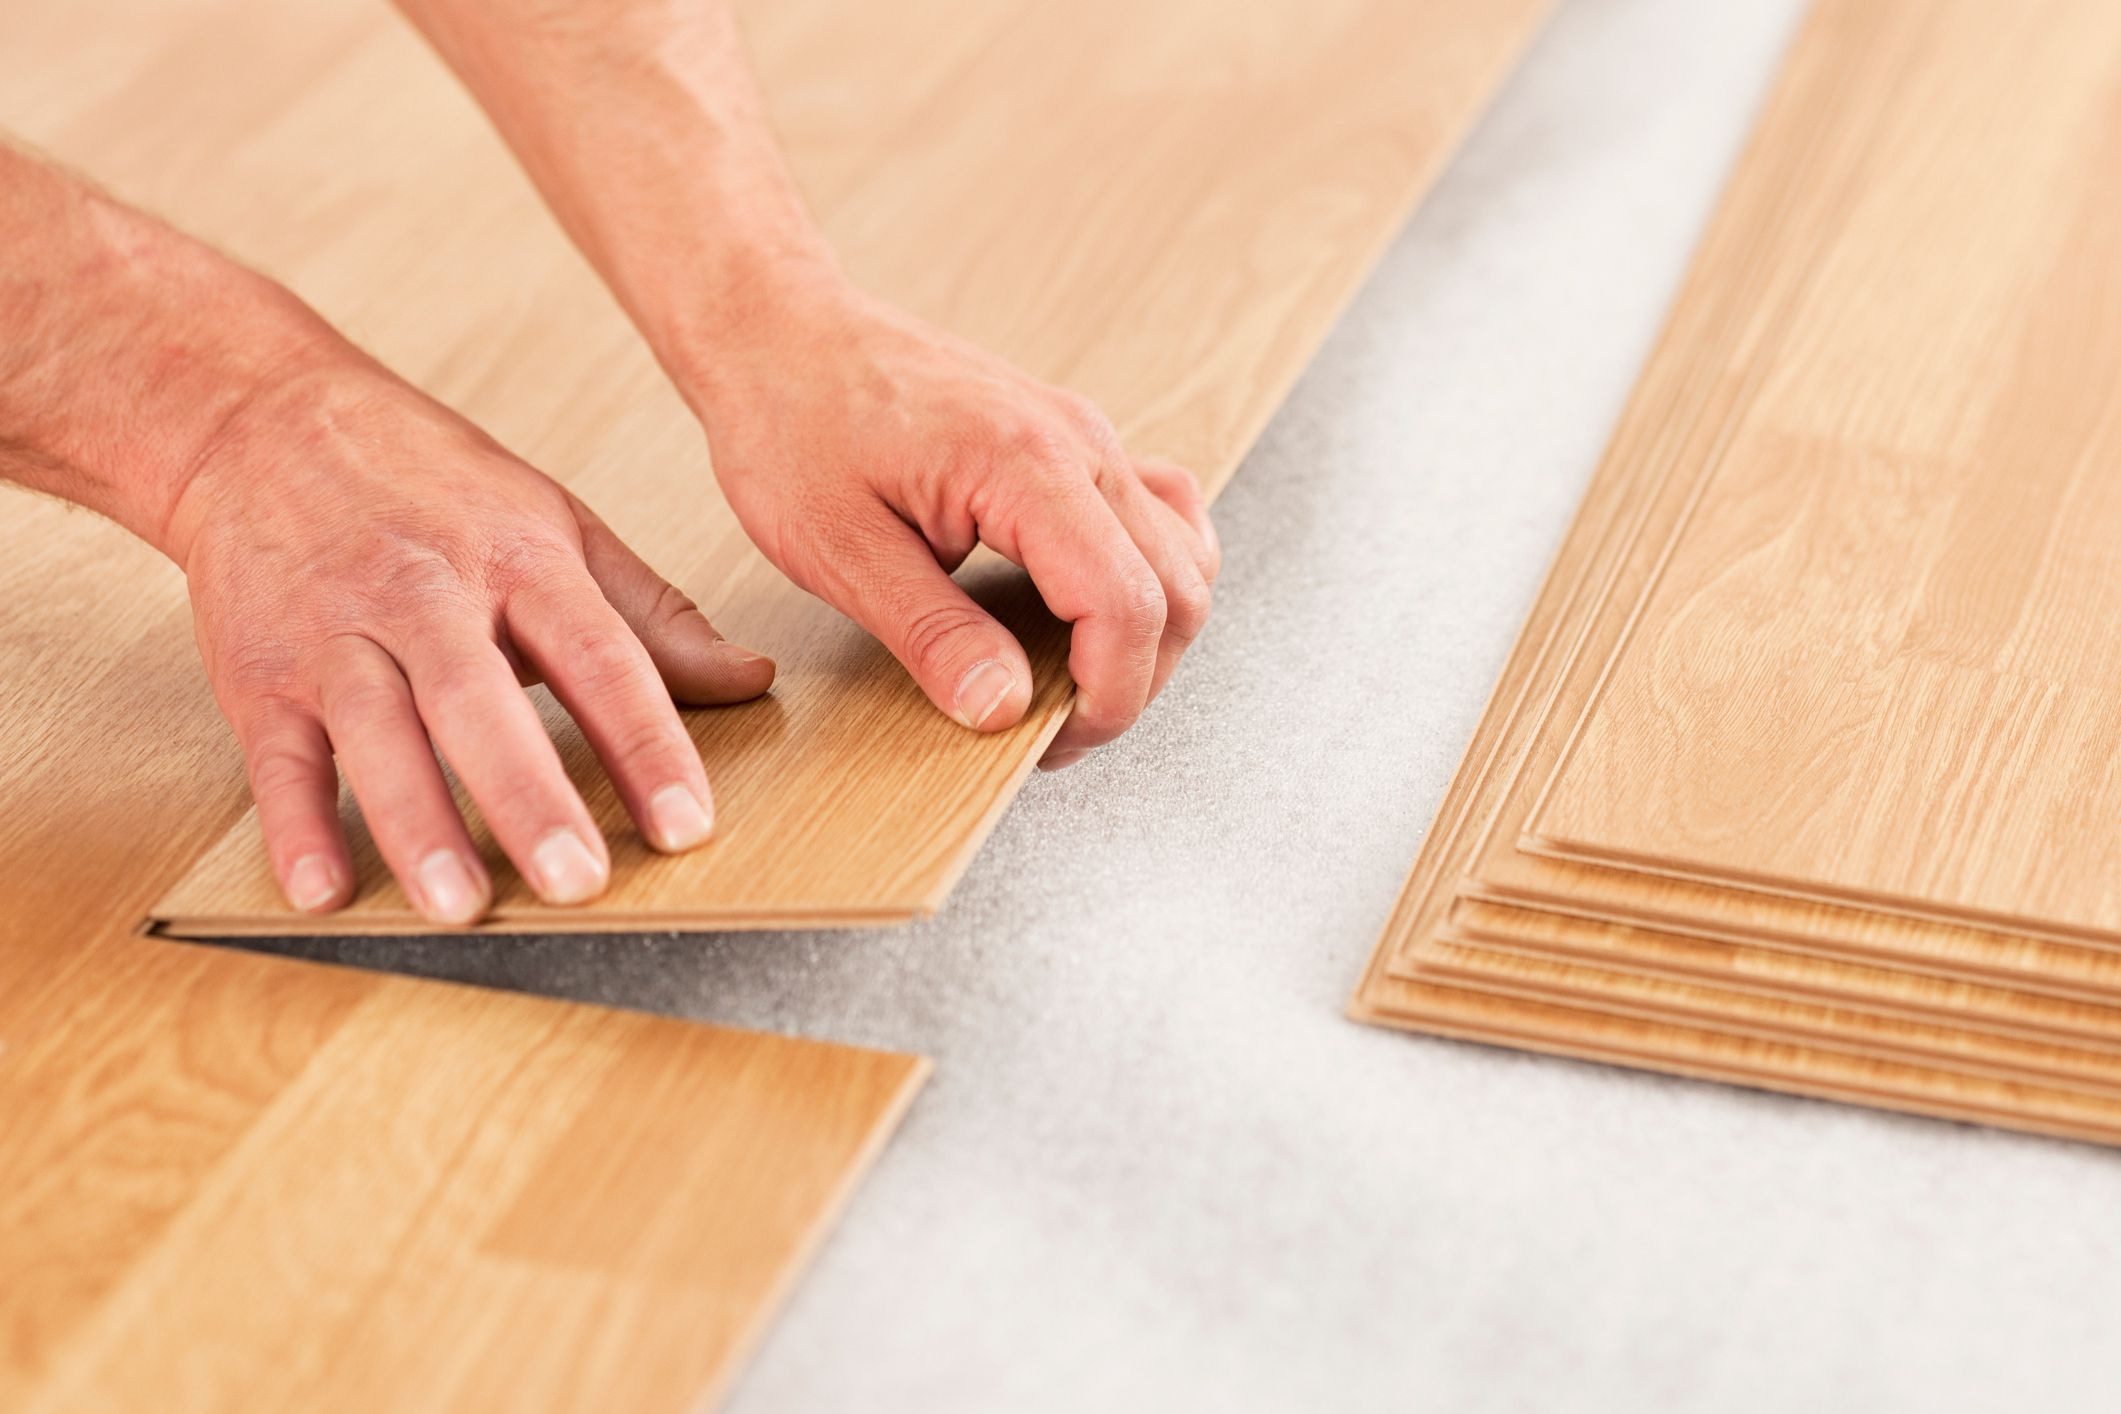 rug pads for hardwood floors of laminate underlayment pros and cons intended for laminate floor install gettyimages 154961561 588816495f9b58bdb3da1a02